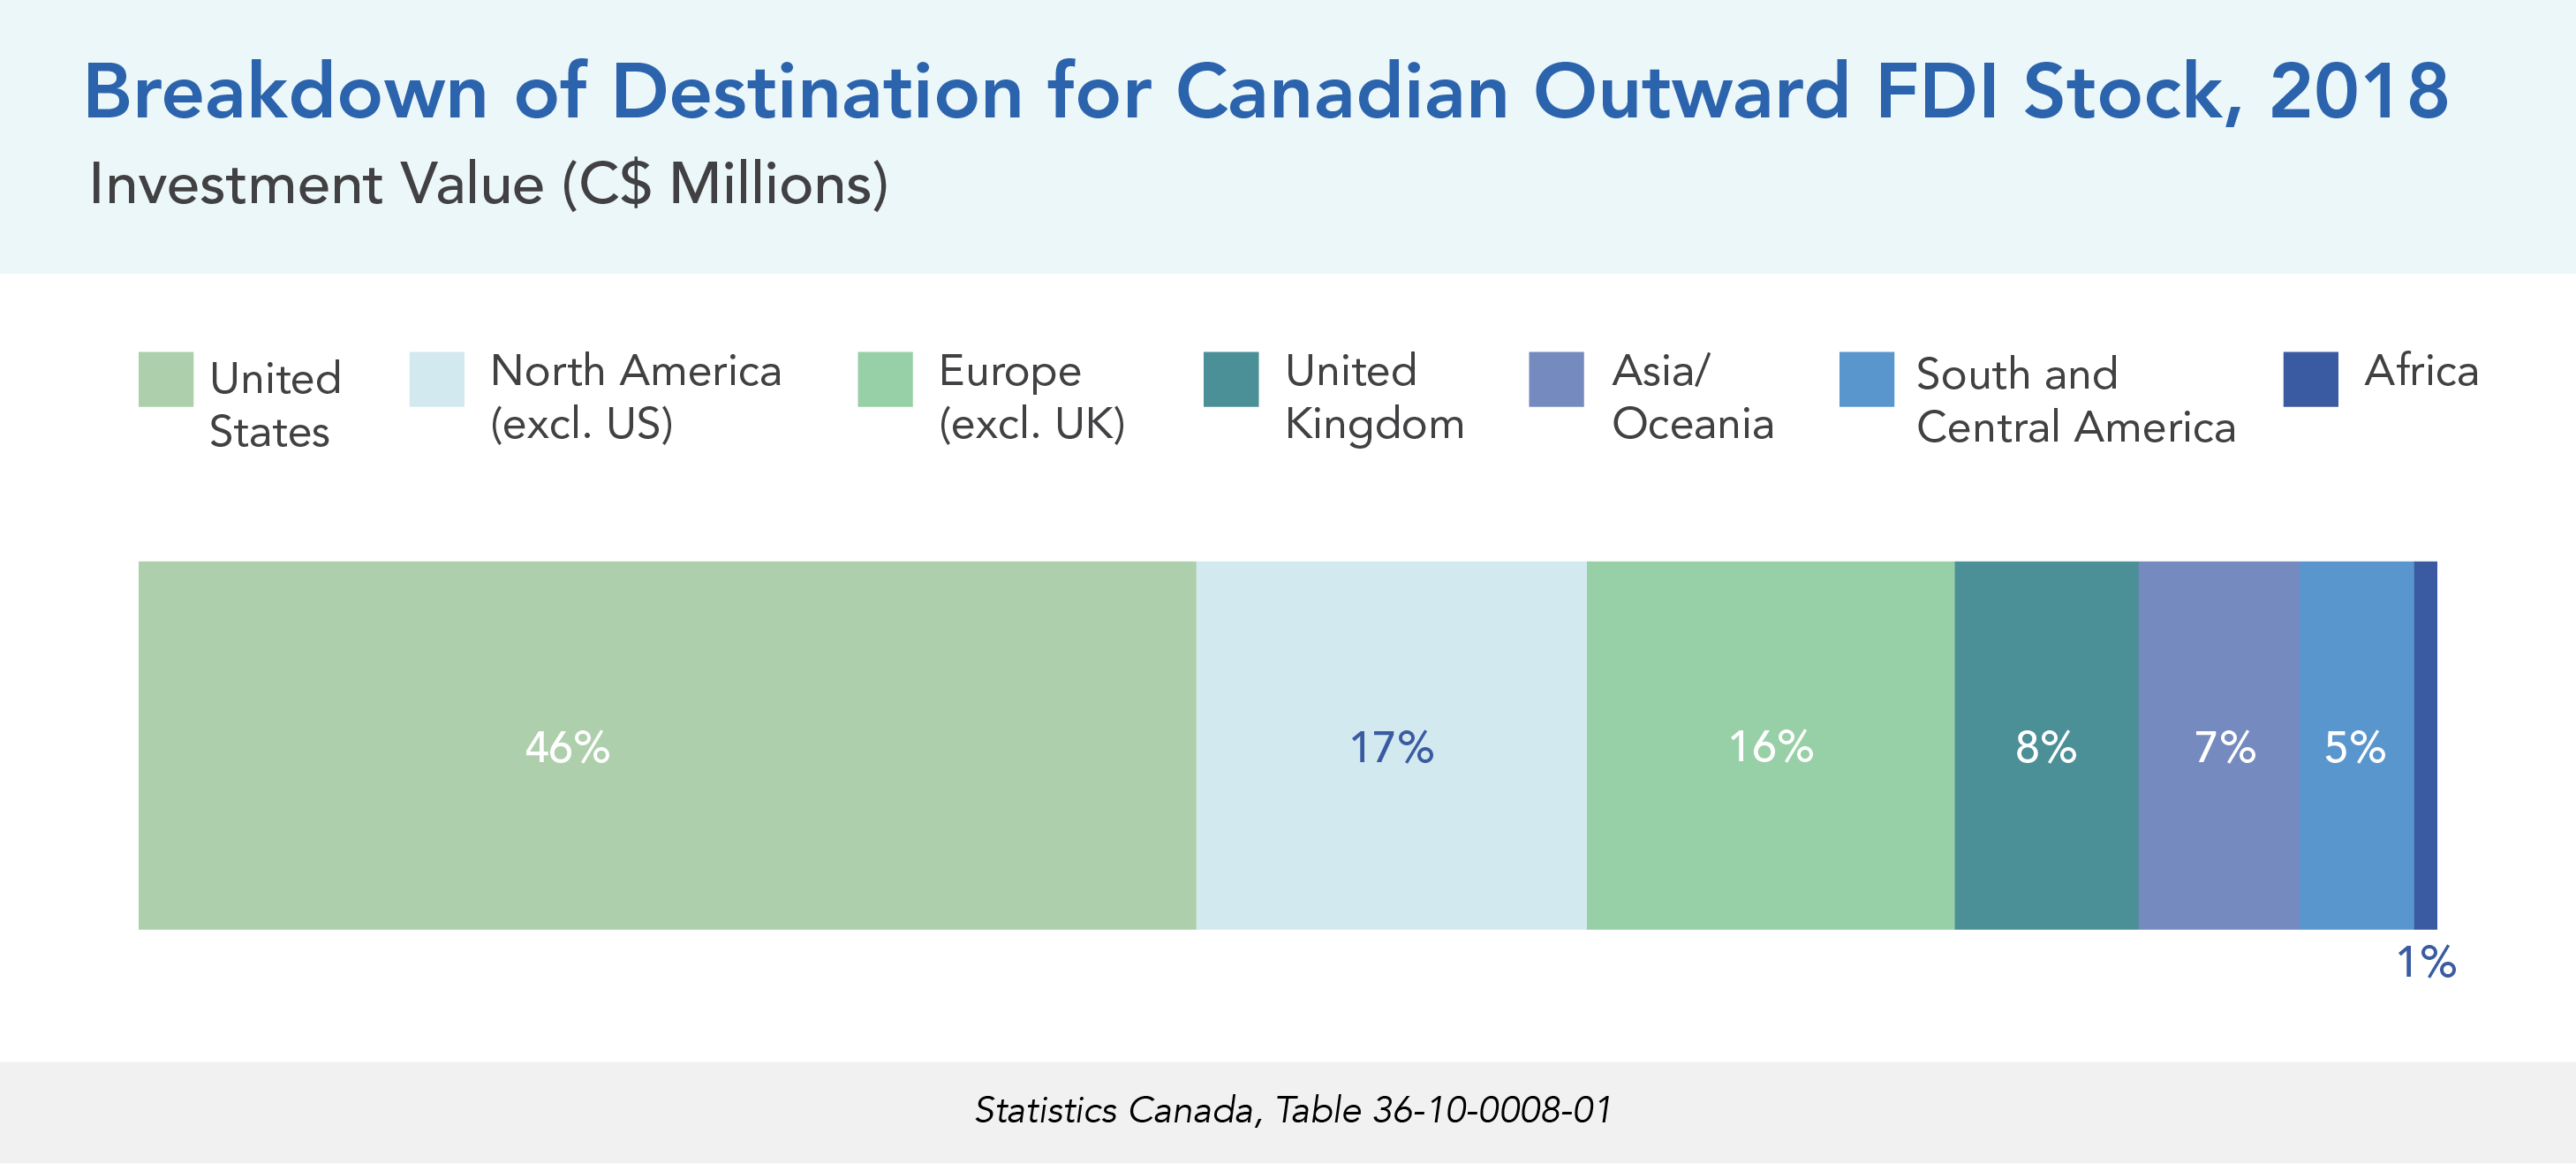 Breakdown of Destination for Canadian Outward FDI Stock, 2018